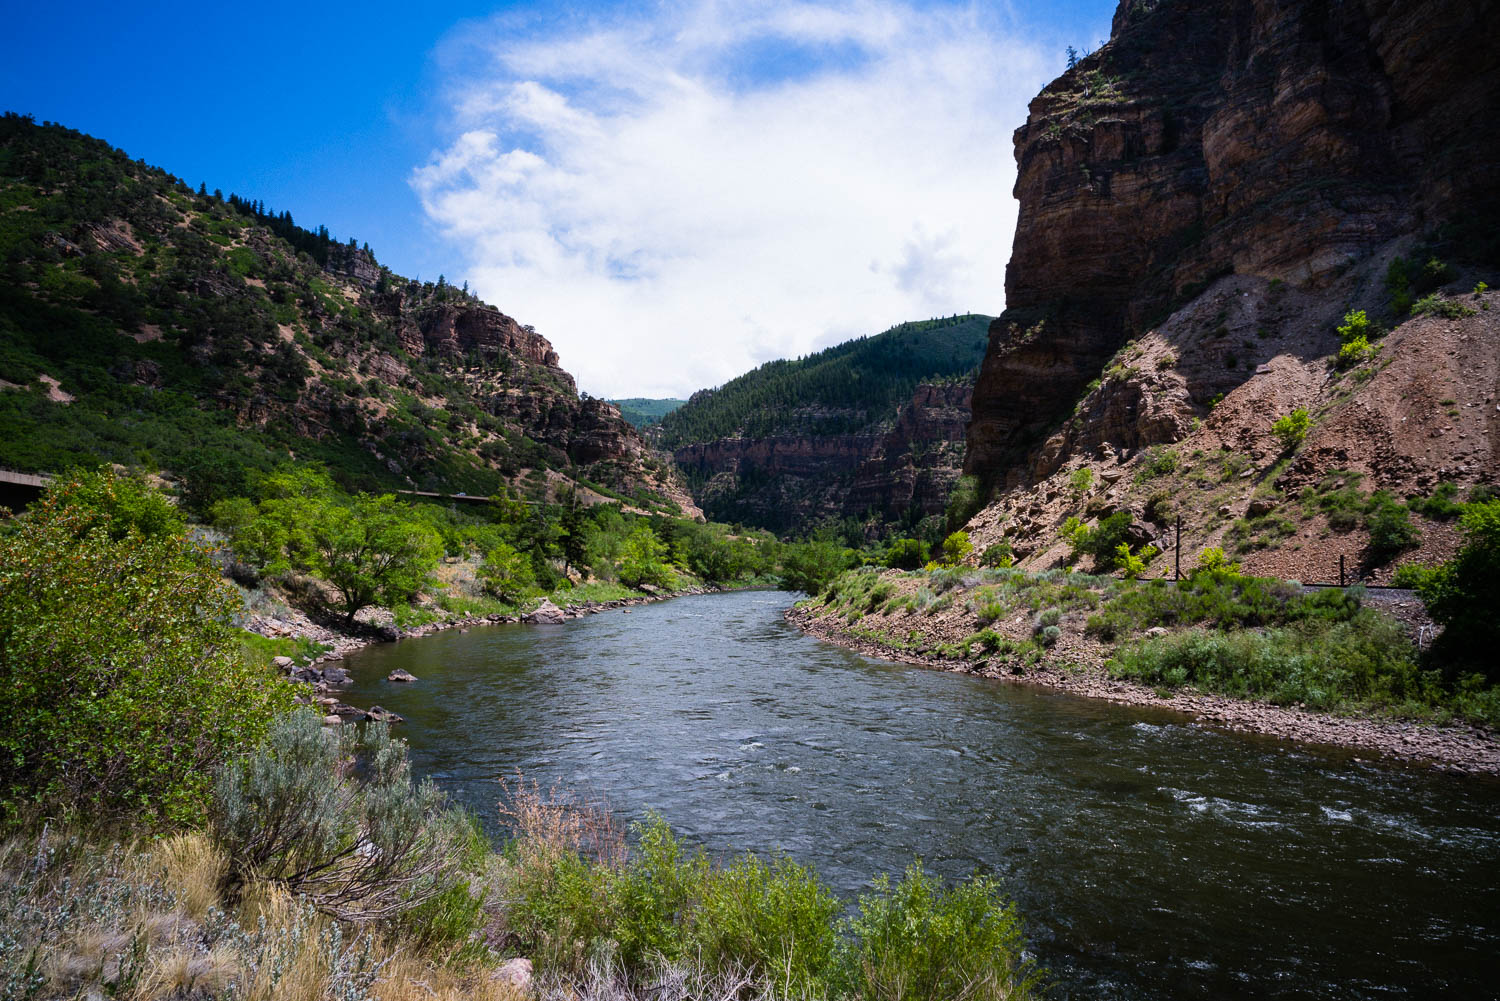 The Colorado River running through Glenwood Canyon. It splits off into the Rio Grande in Glenwood Springs where you can pick up another bike path that takes you all the way down to Aspen. This part of the country is an outdoor lover's paradise.